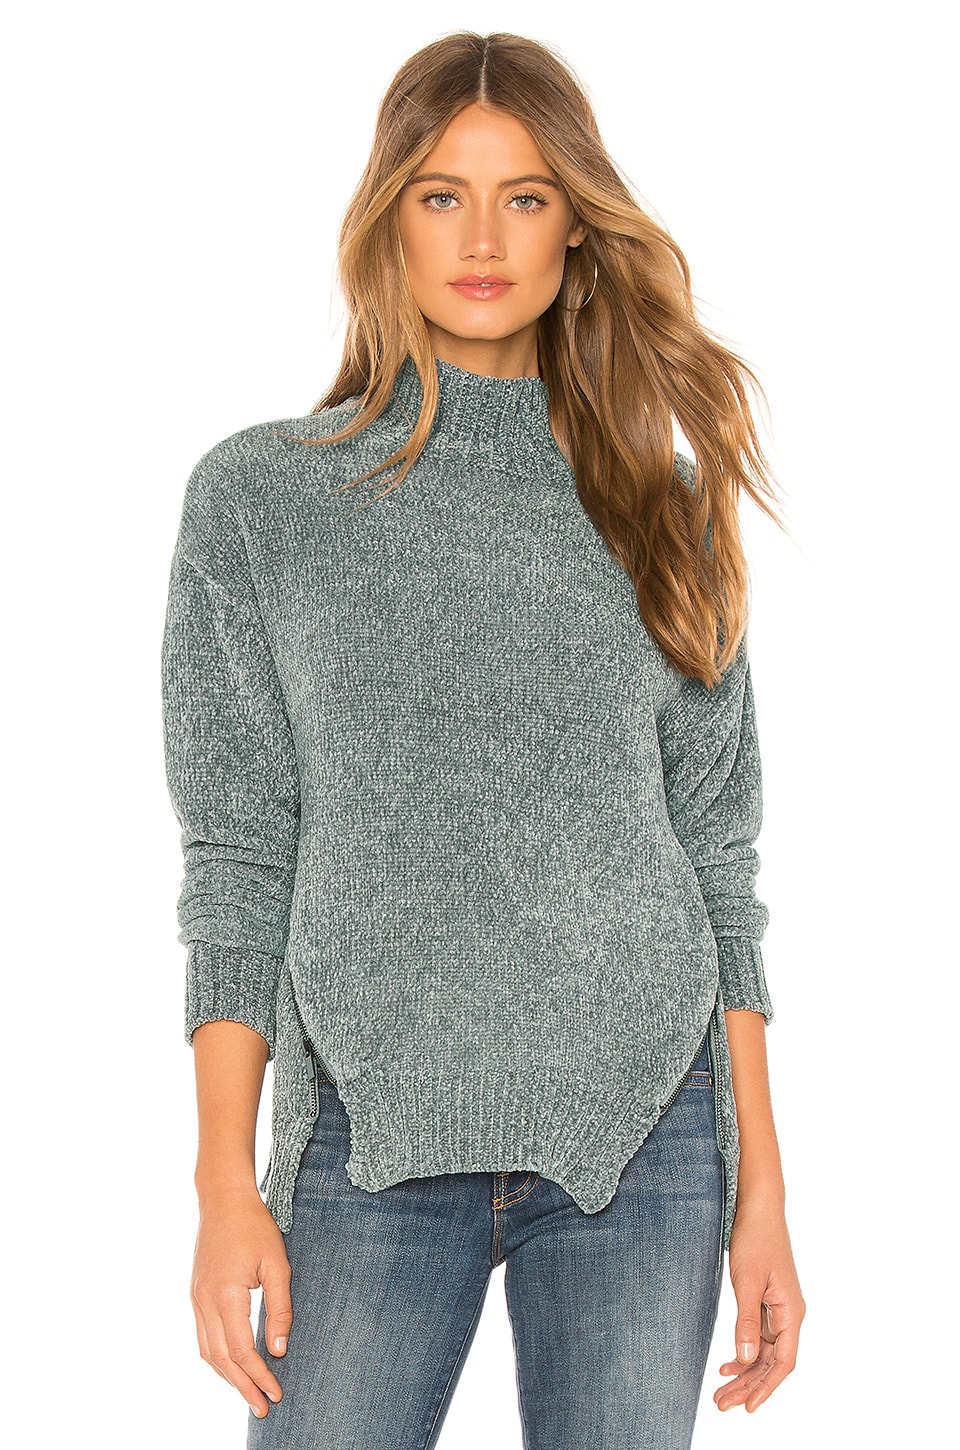 Lovers + Friends Delridge Chenille Sweater in Heather Grey